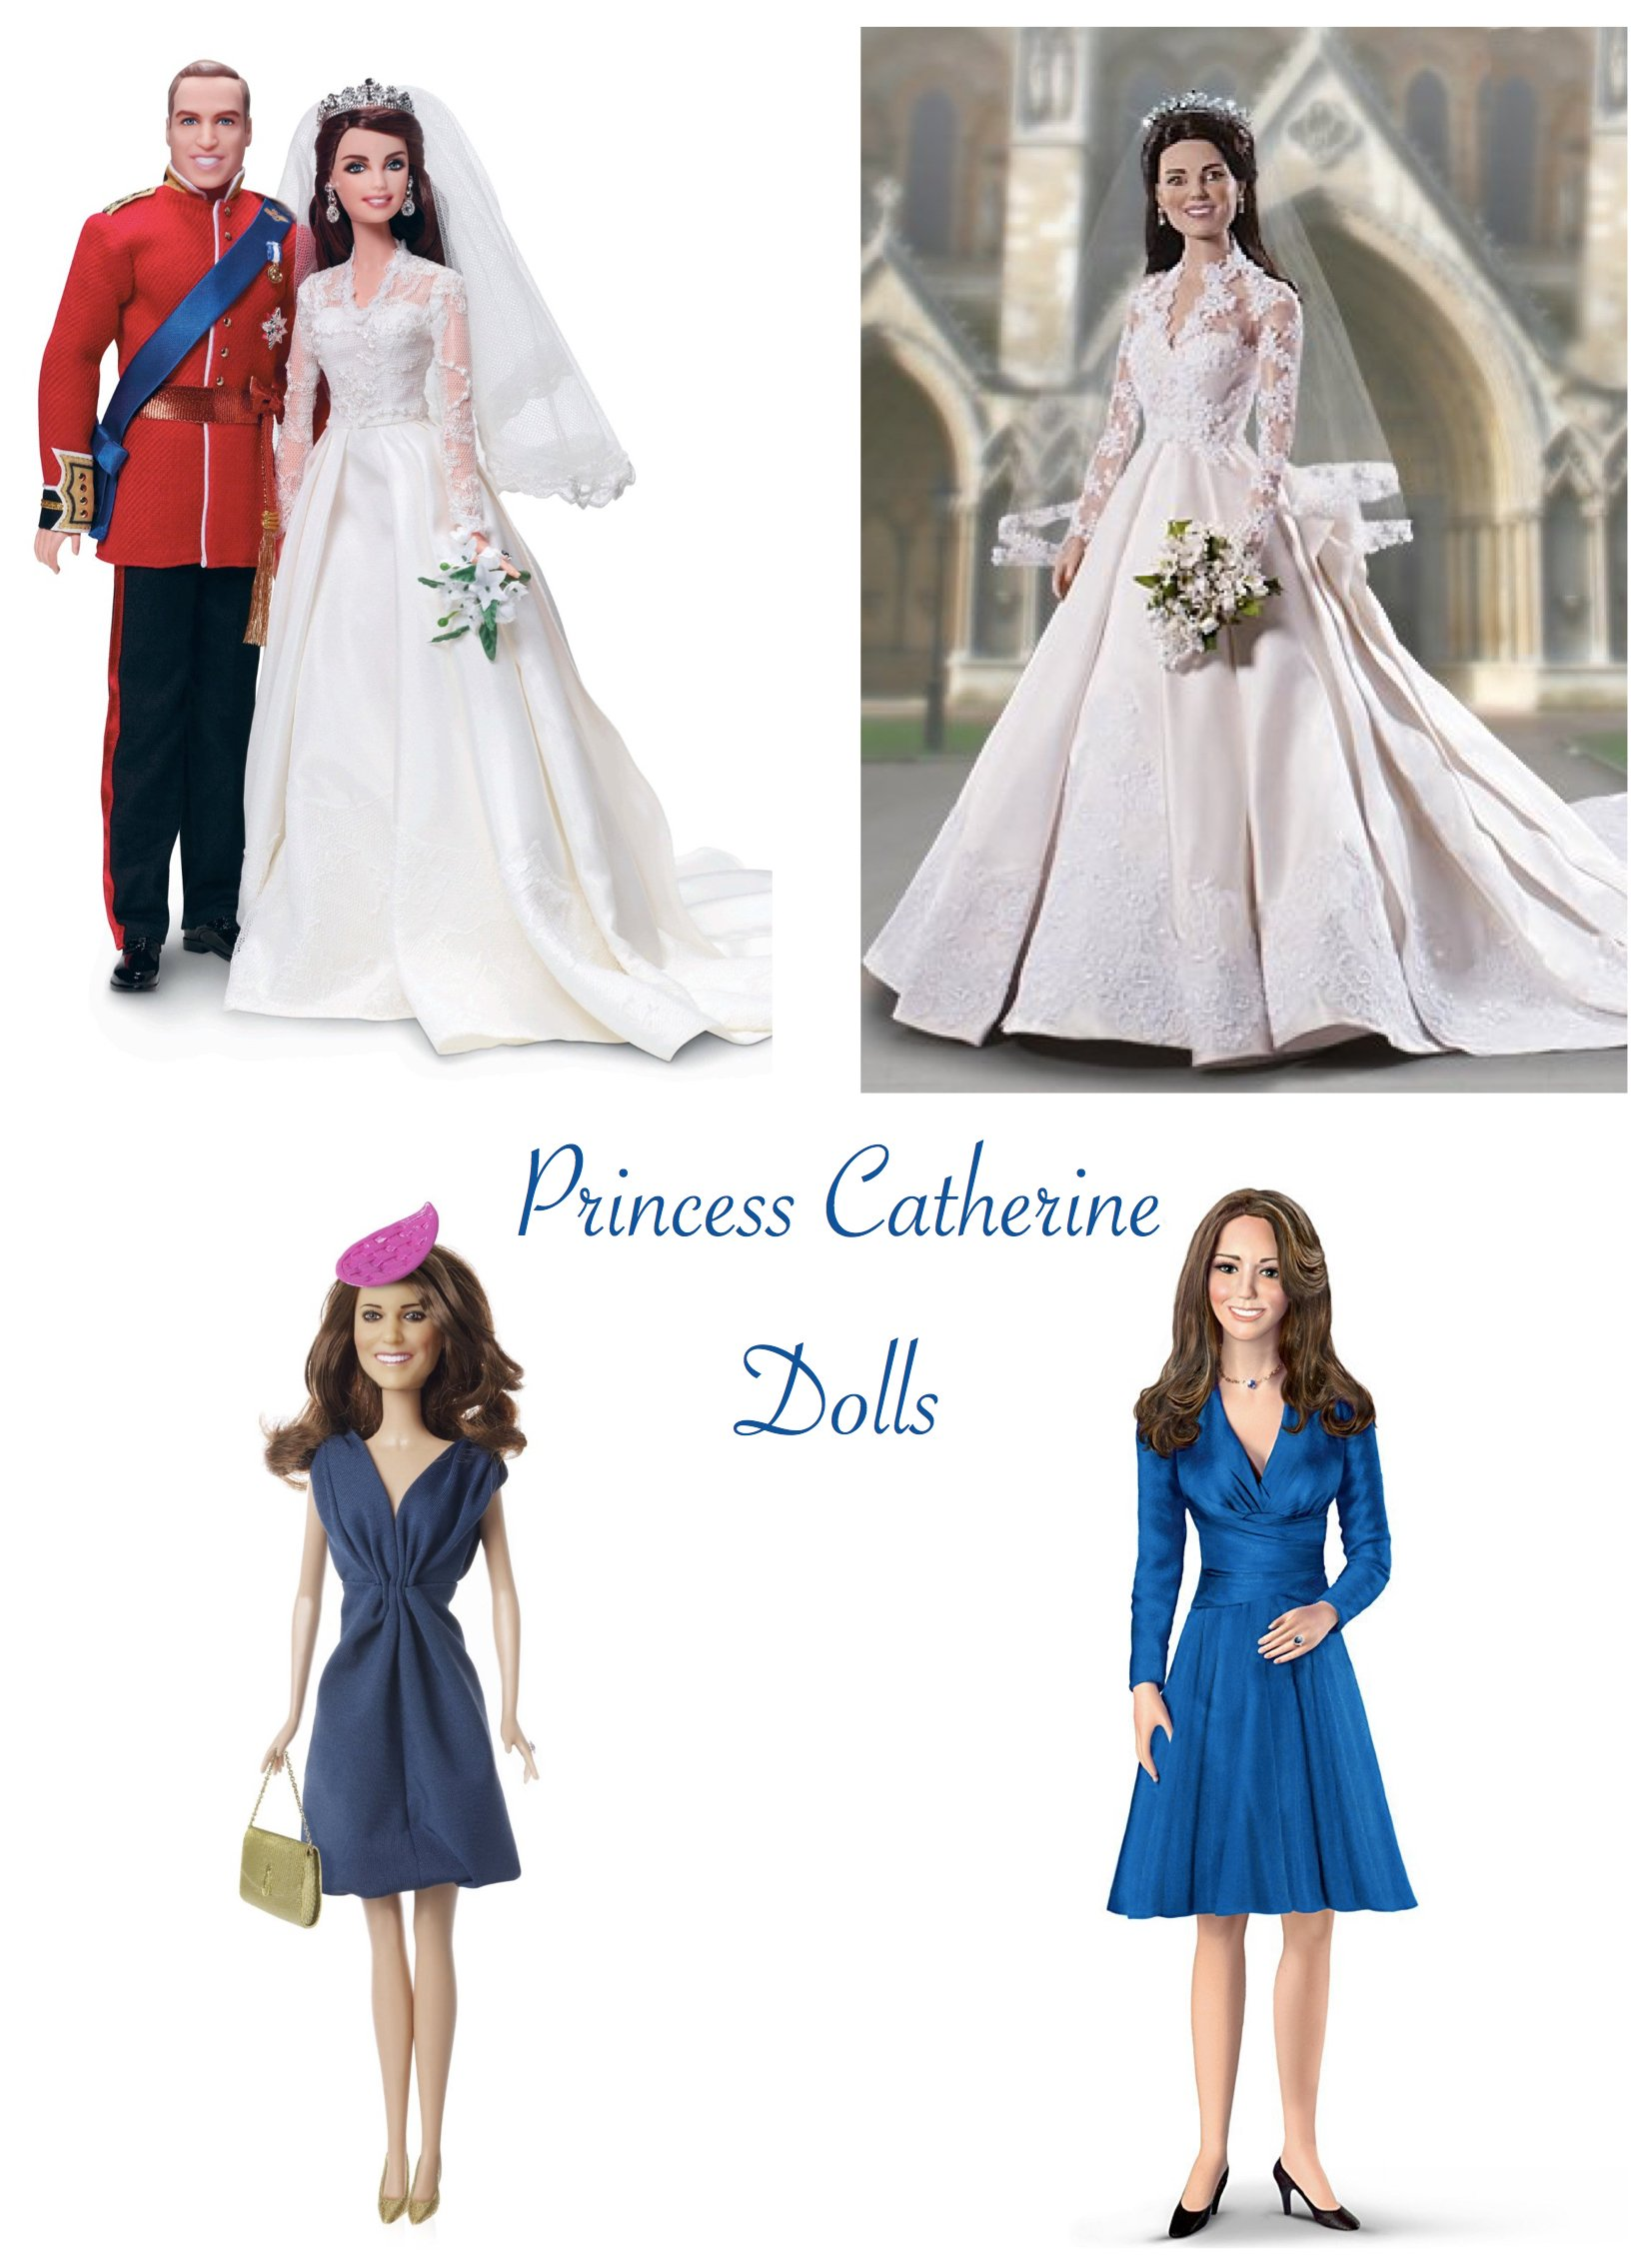 Princess Catherine Dolls